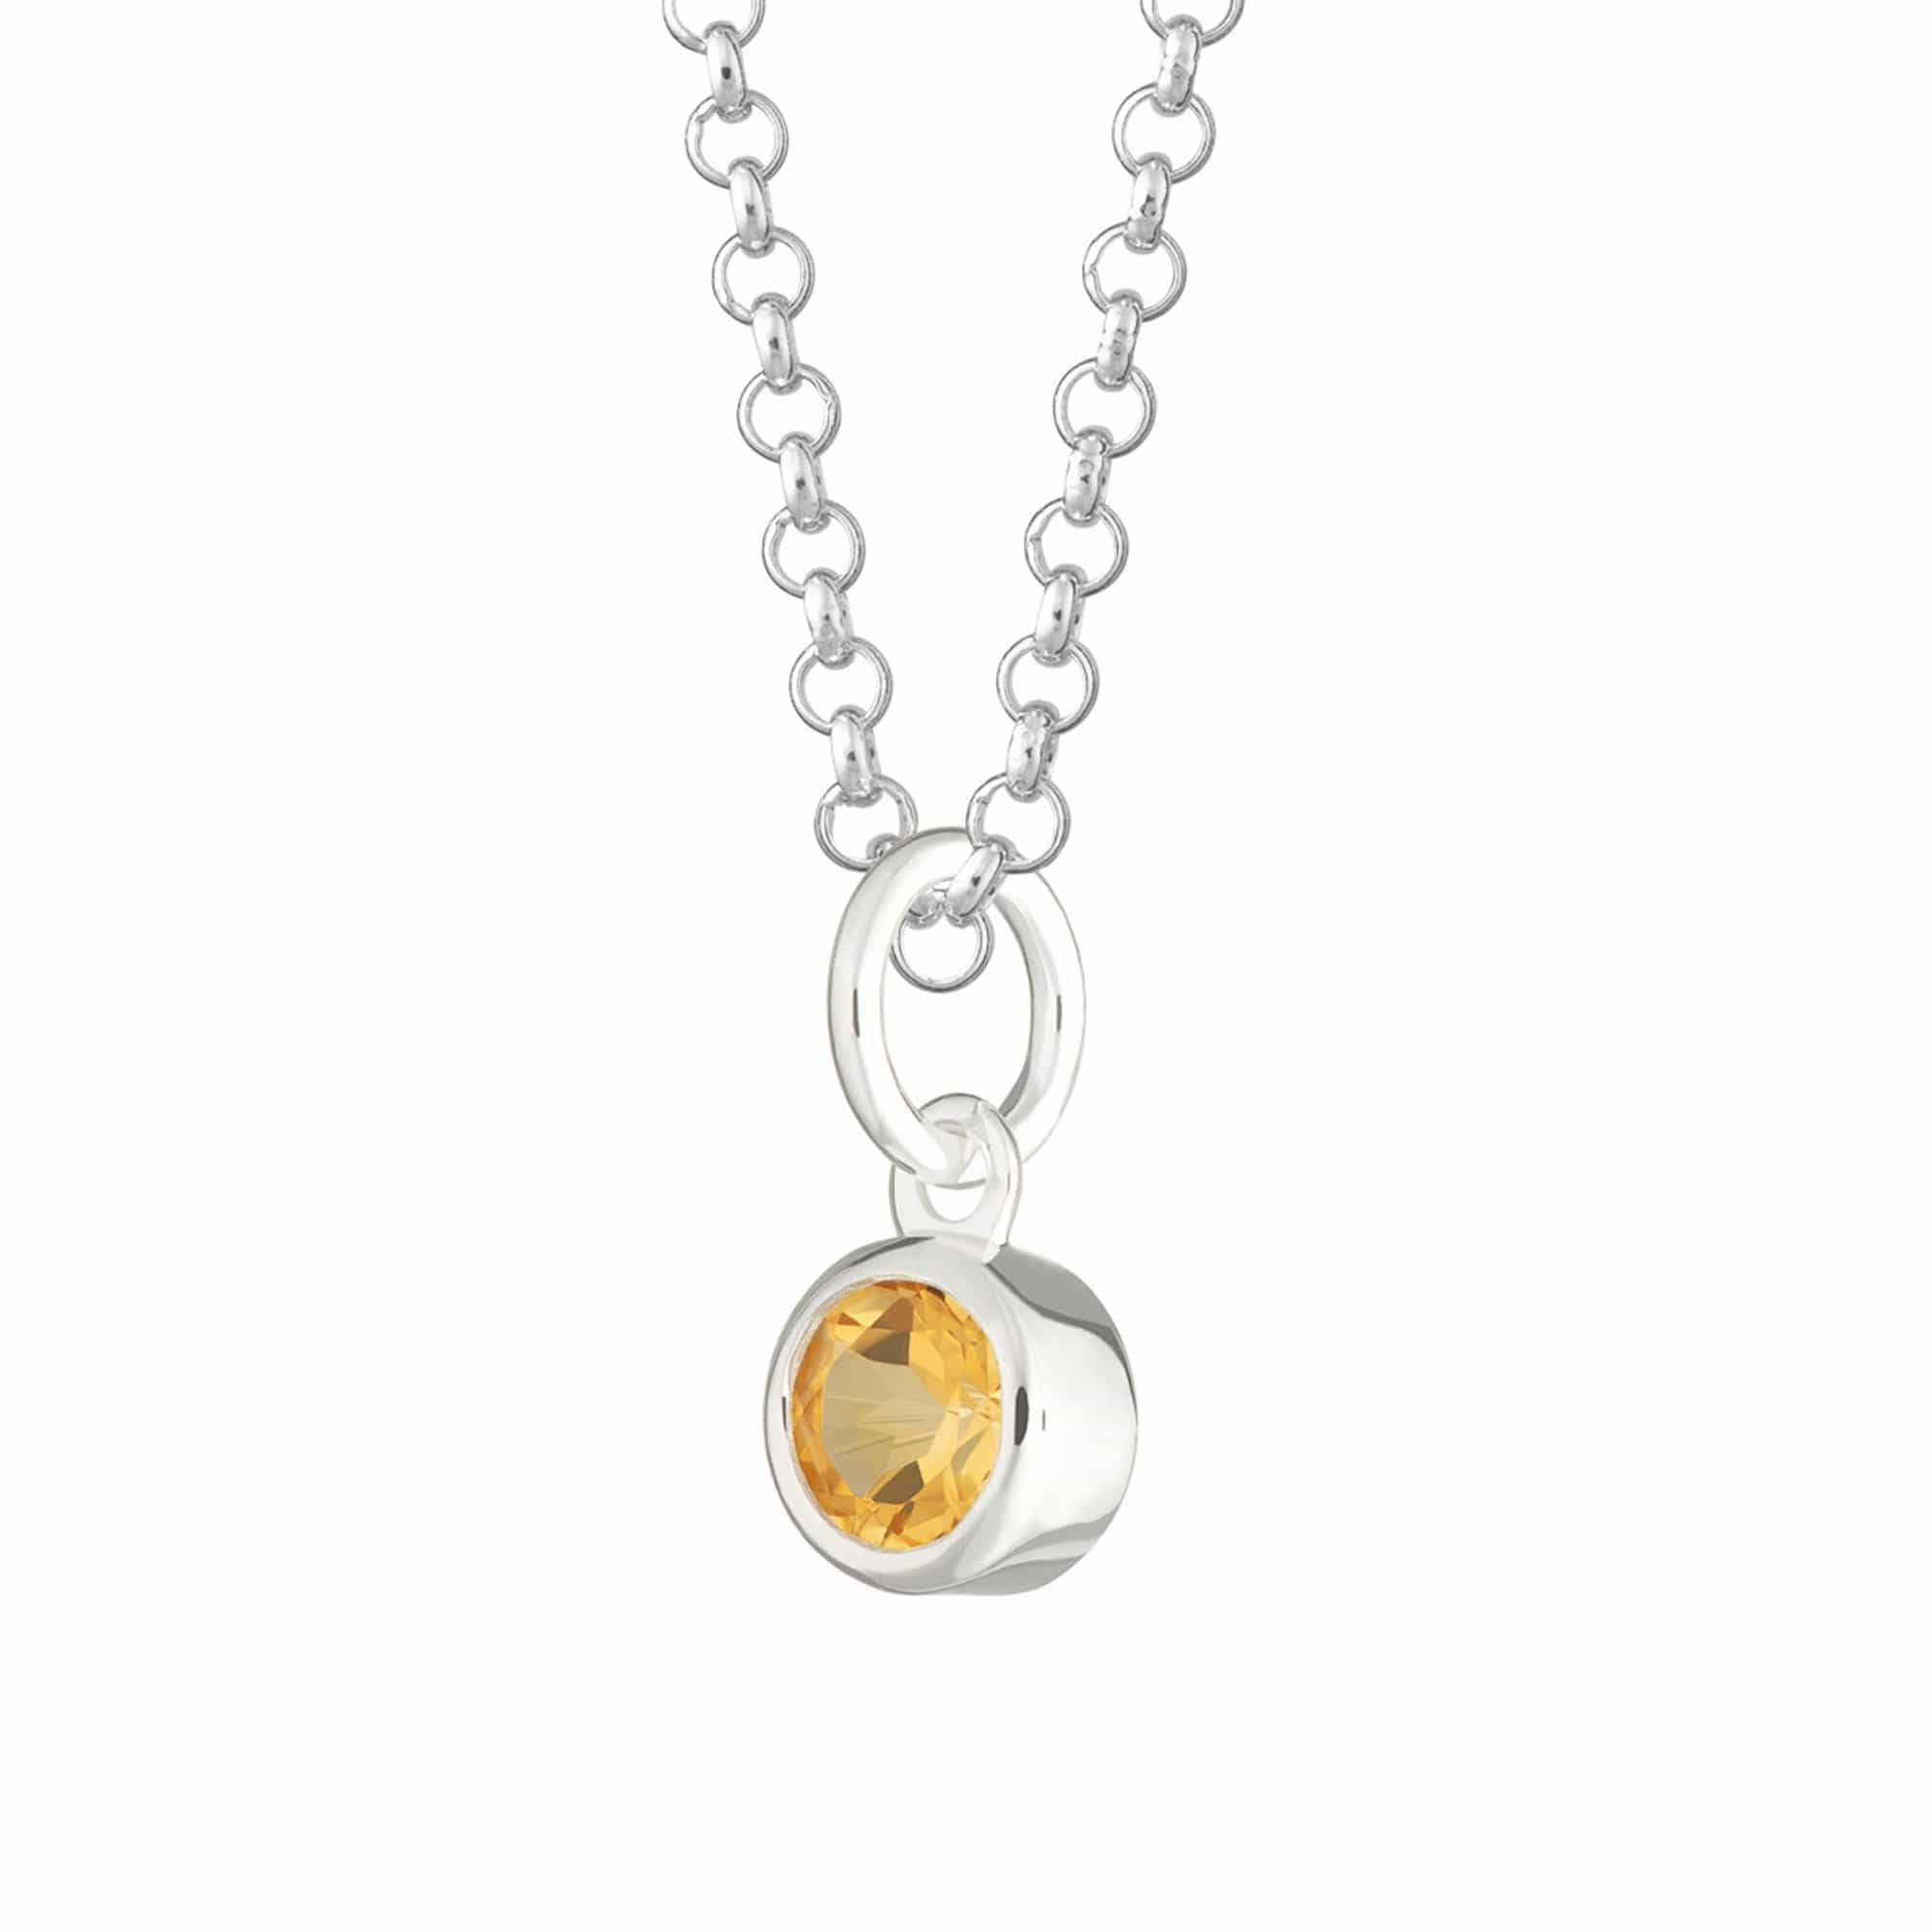 Personalised November Birthstone Necklace (Citrine)